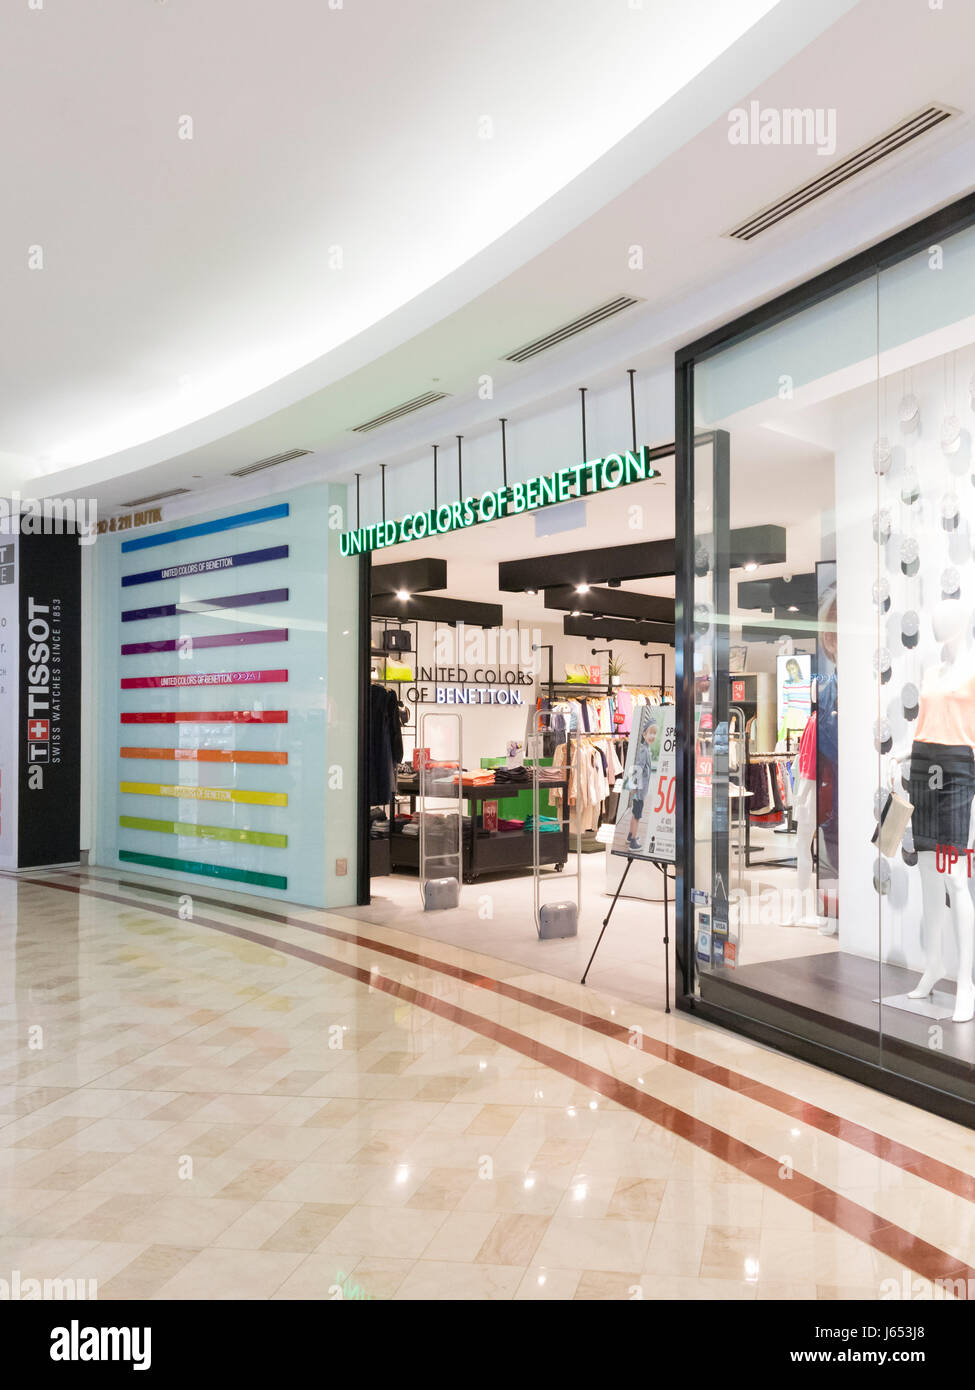 United colors of Benetton shop, Malaysia - Stock Image